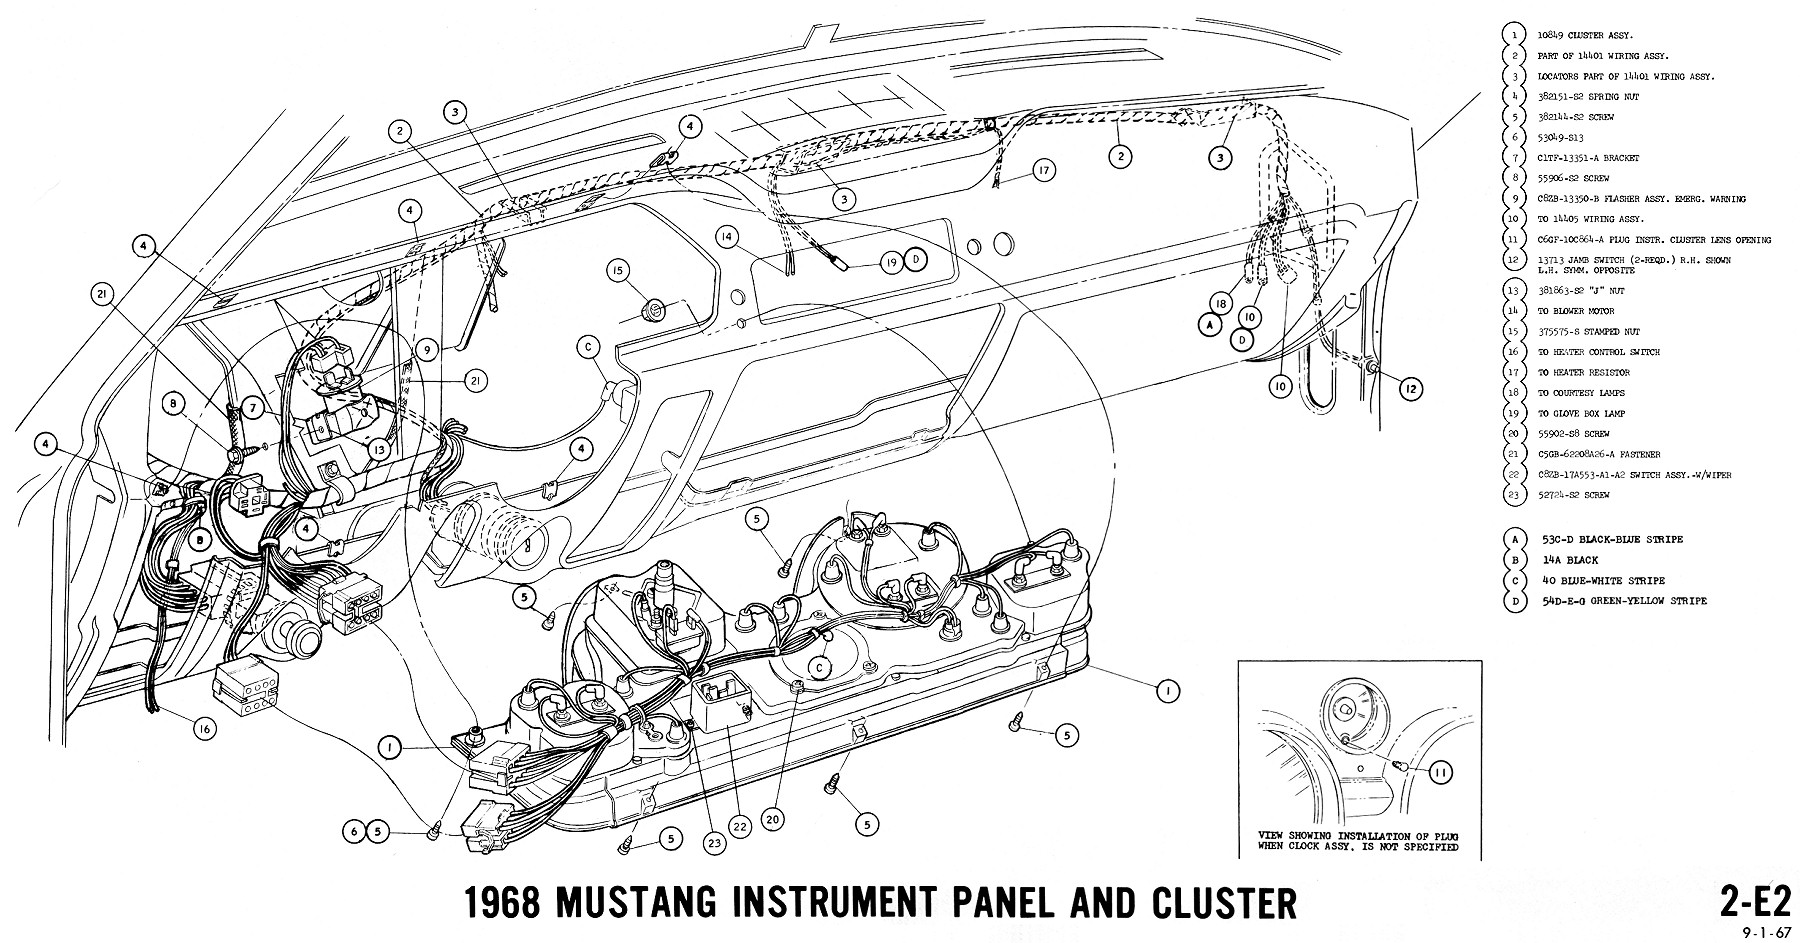 1967 Mustang Cluster Wiring Schematic Start Building A Mercury Diagram Motor Outboard Og251541 1968 Diagrams And Vacuum Schematics Average Joe Rh Averagejoerestoration Com Alternator 67 Ammeter